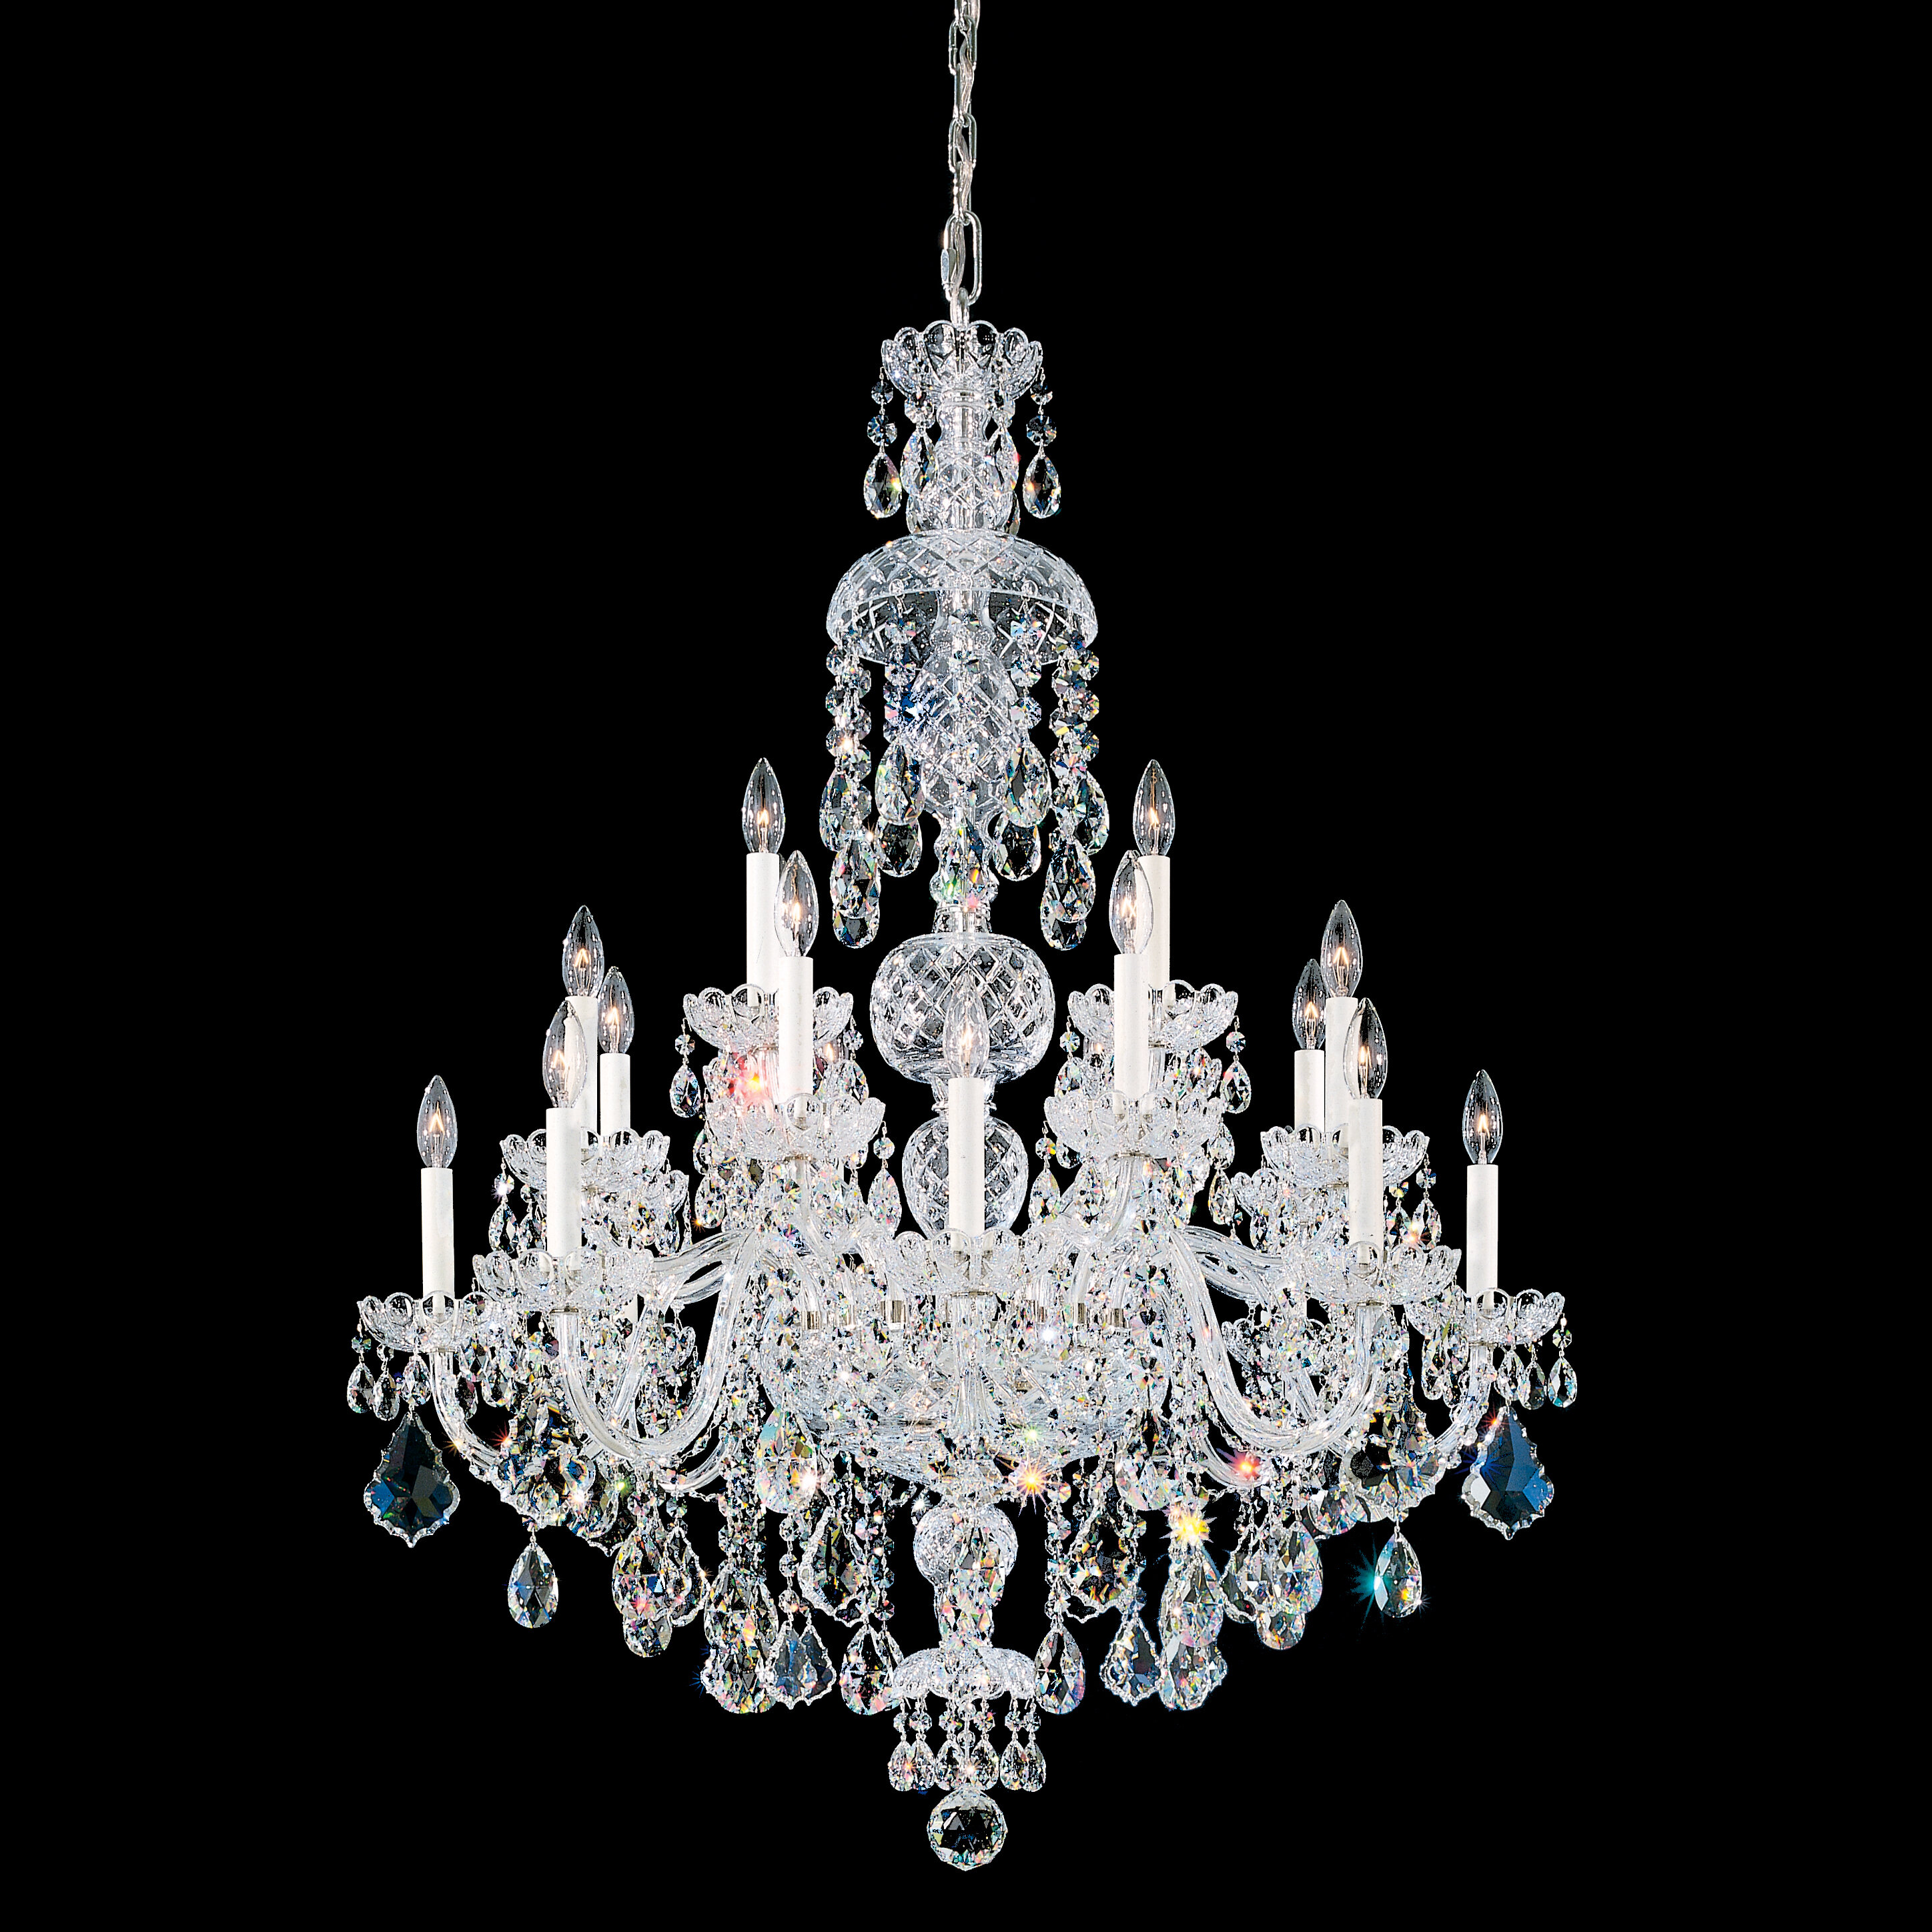 Schonbek Olde World 25 Light Candle Style Classic Traditional Chandelier Wayfair